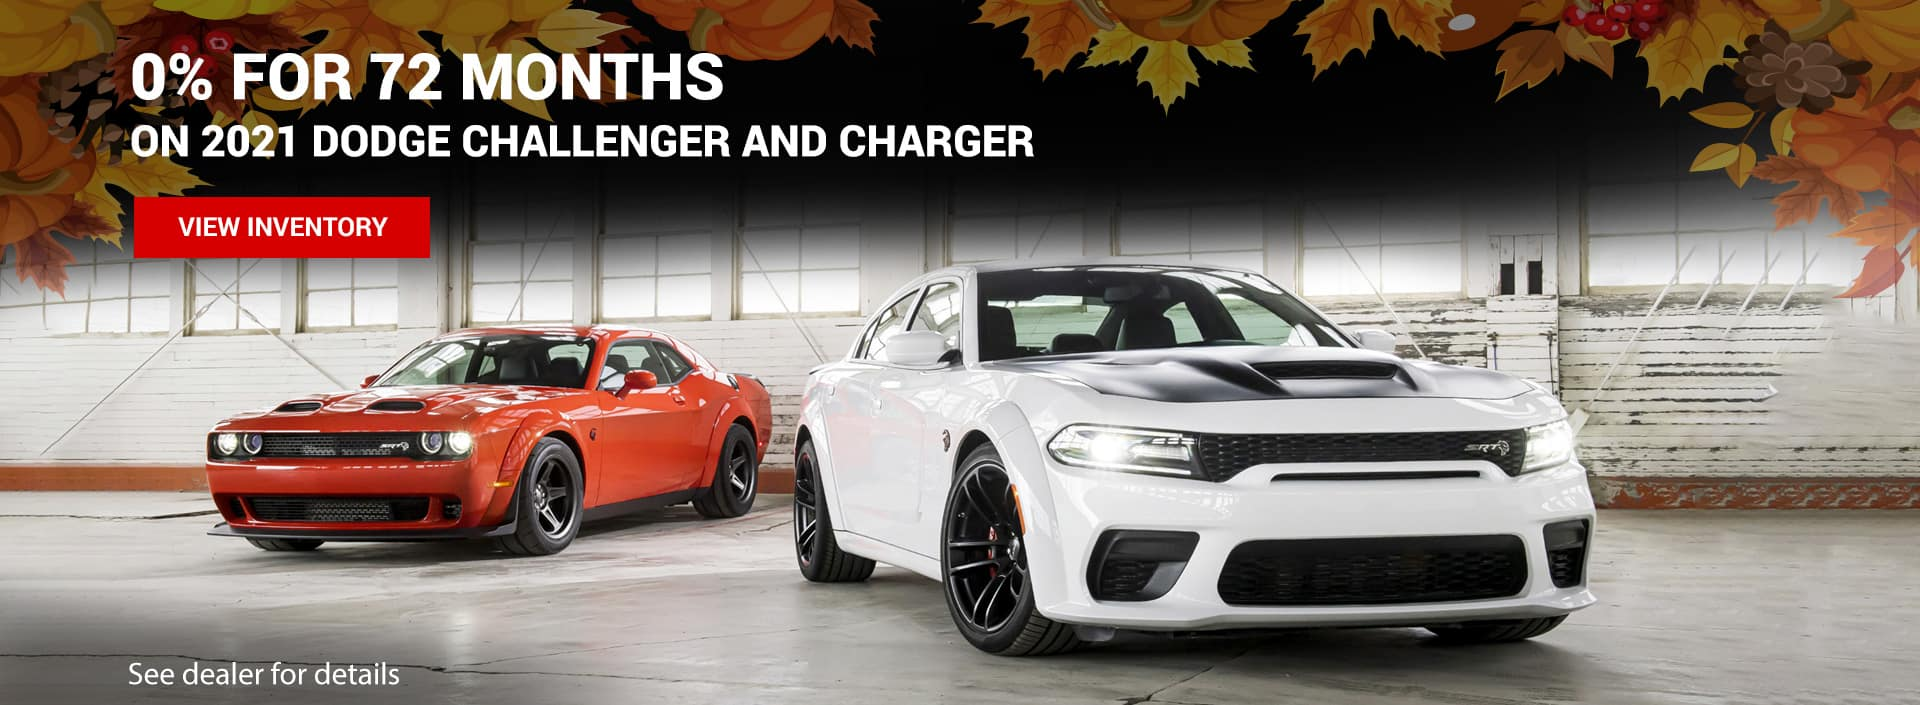 0% for 72 days Dodge Challenger and Charger